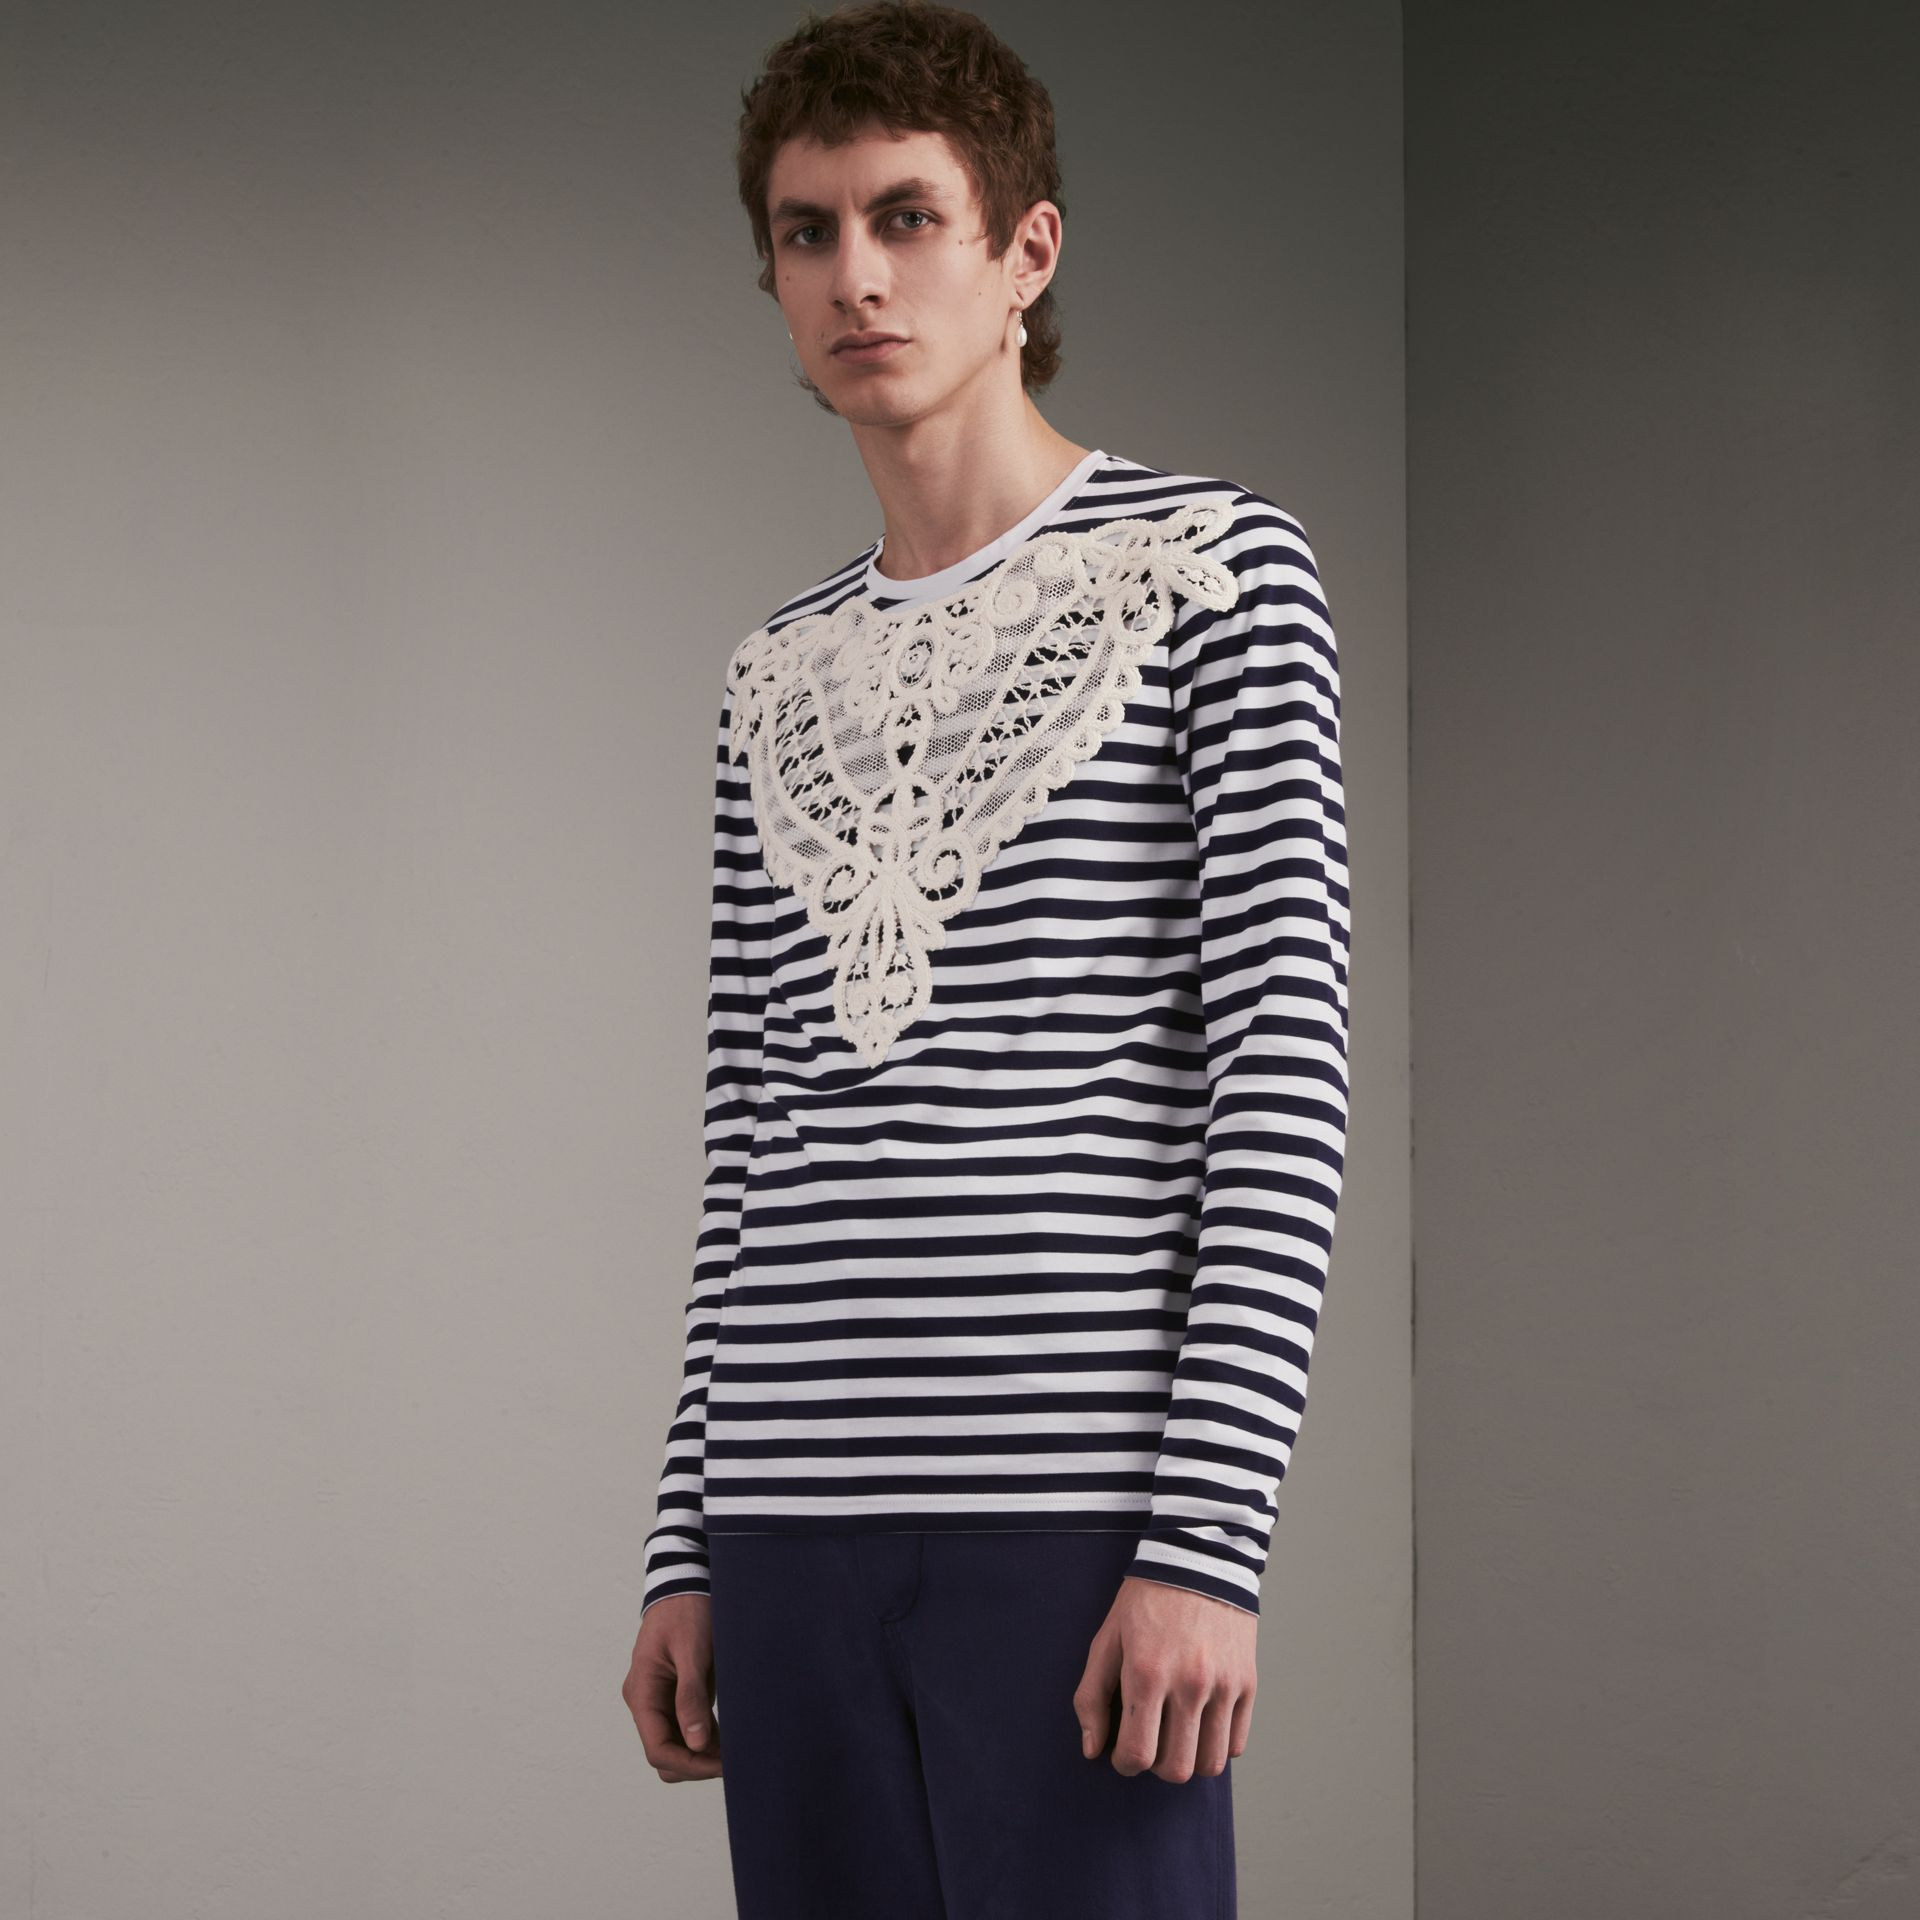 Unisex Breton Stripe Cotton Top with Lace Appliqué - Men | Burberry - gallery image 1